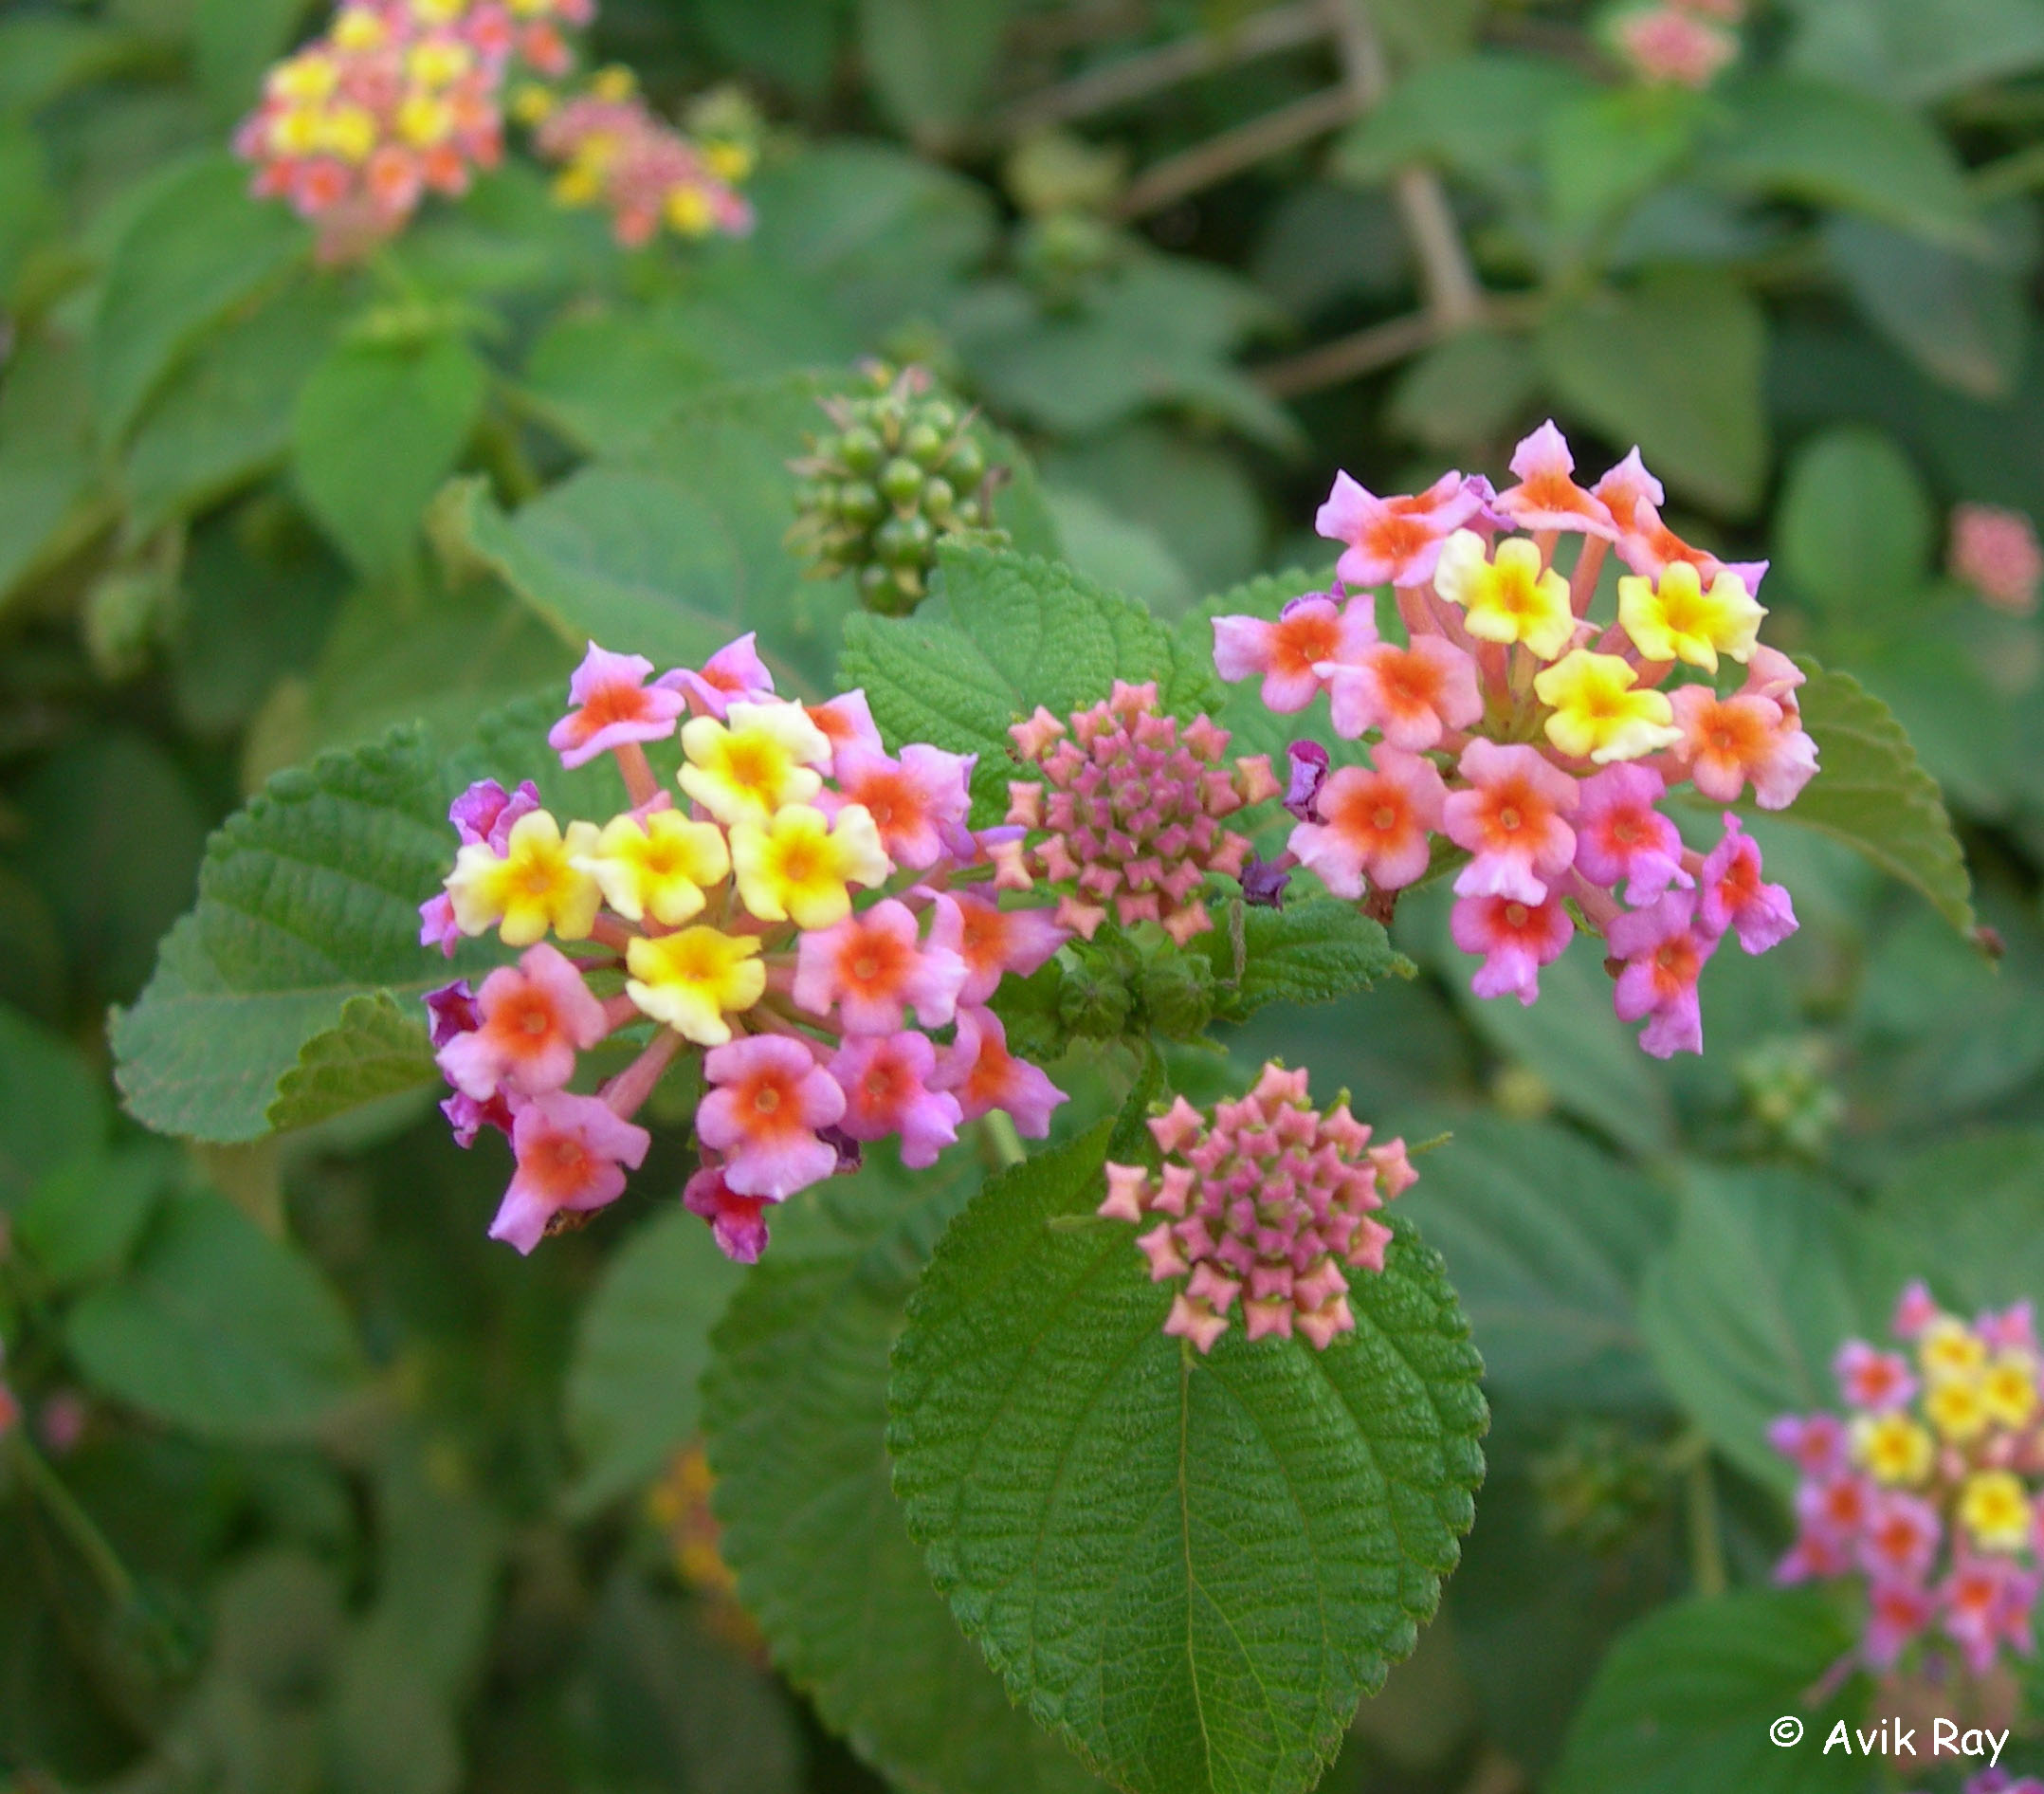 images/species/1046_Lantana camara/1046_1.jpg